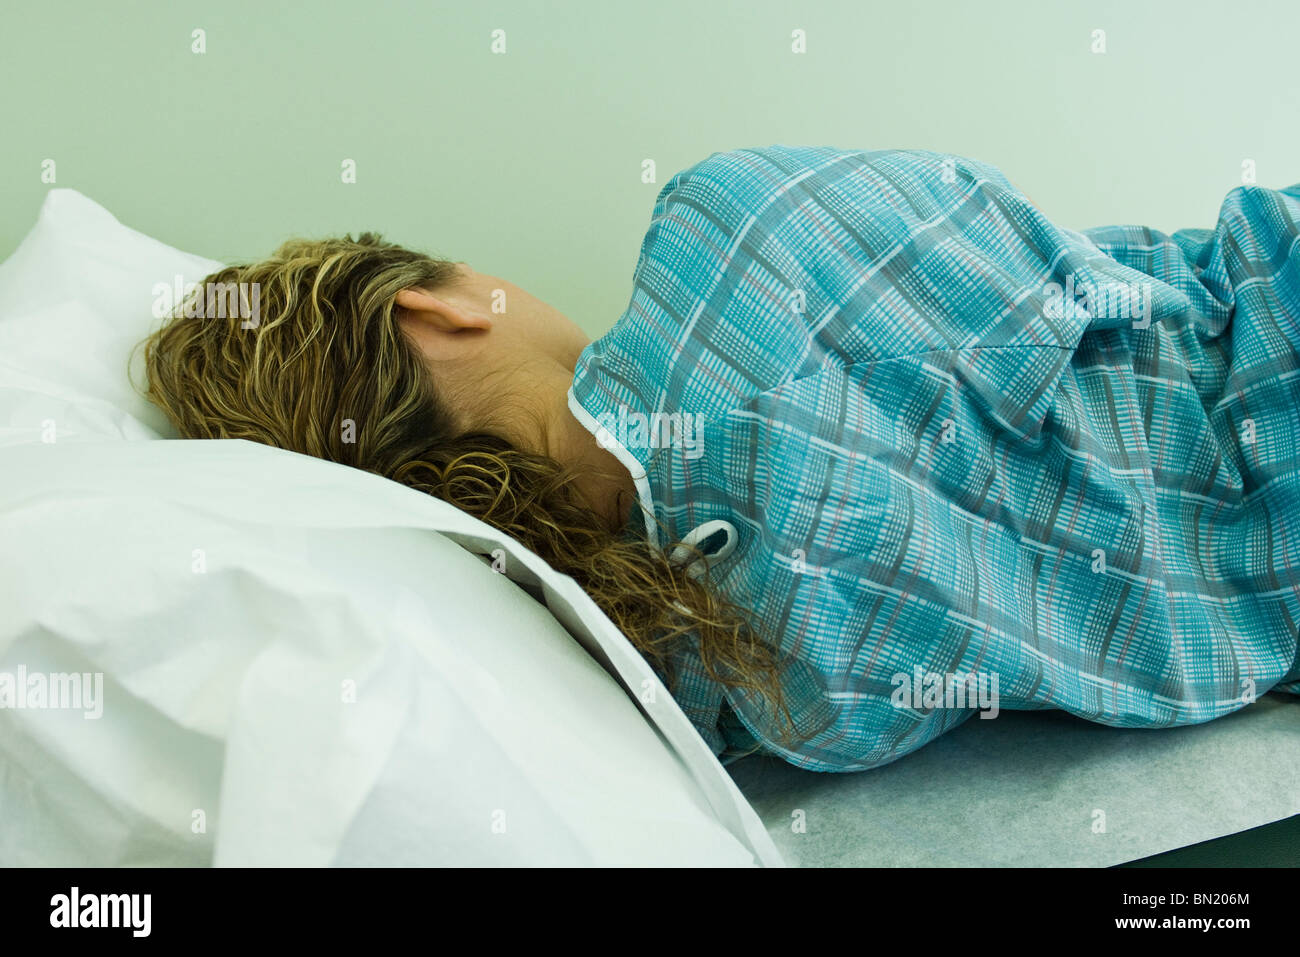 Female patient lying on side on examination table - Stock Image